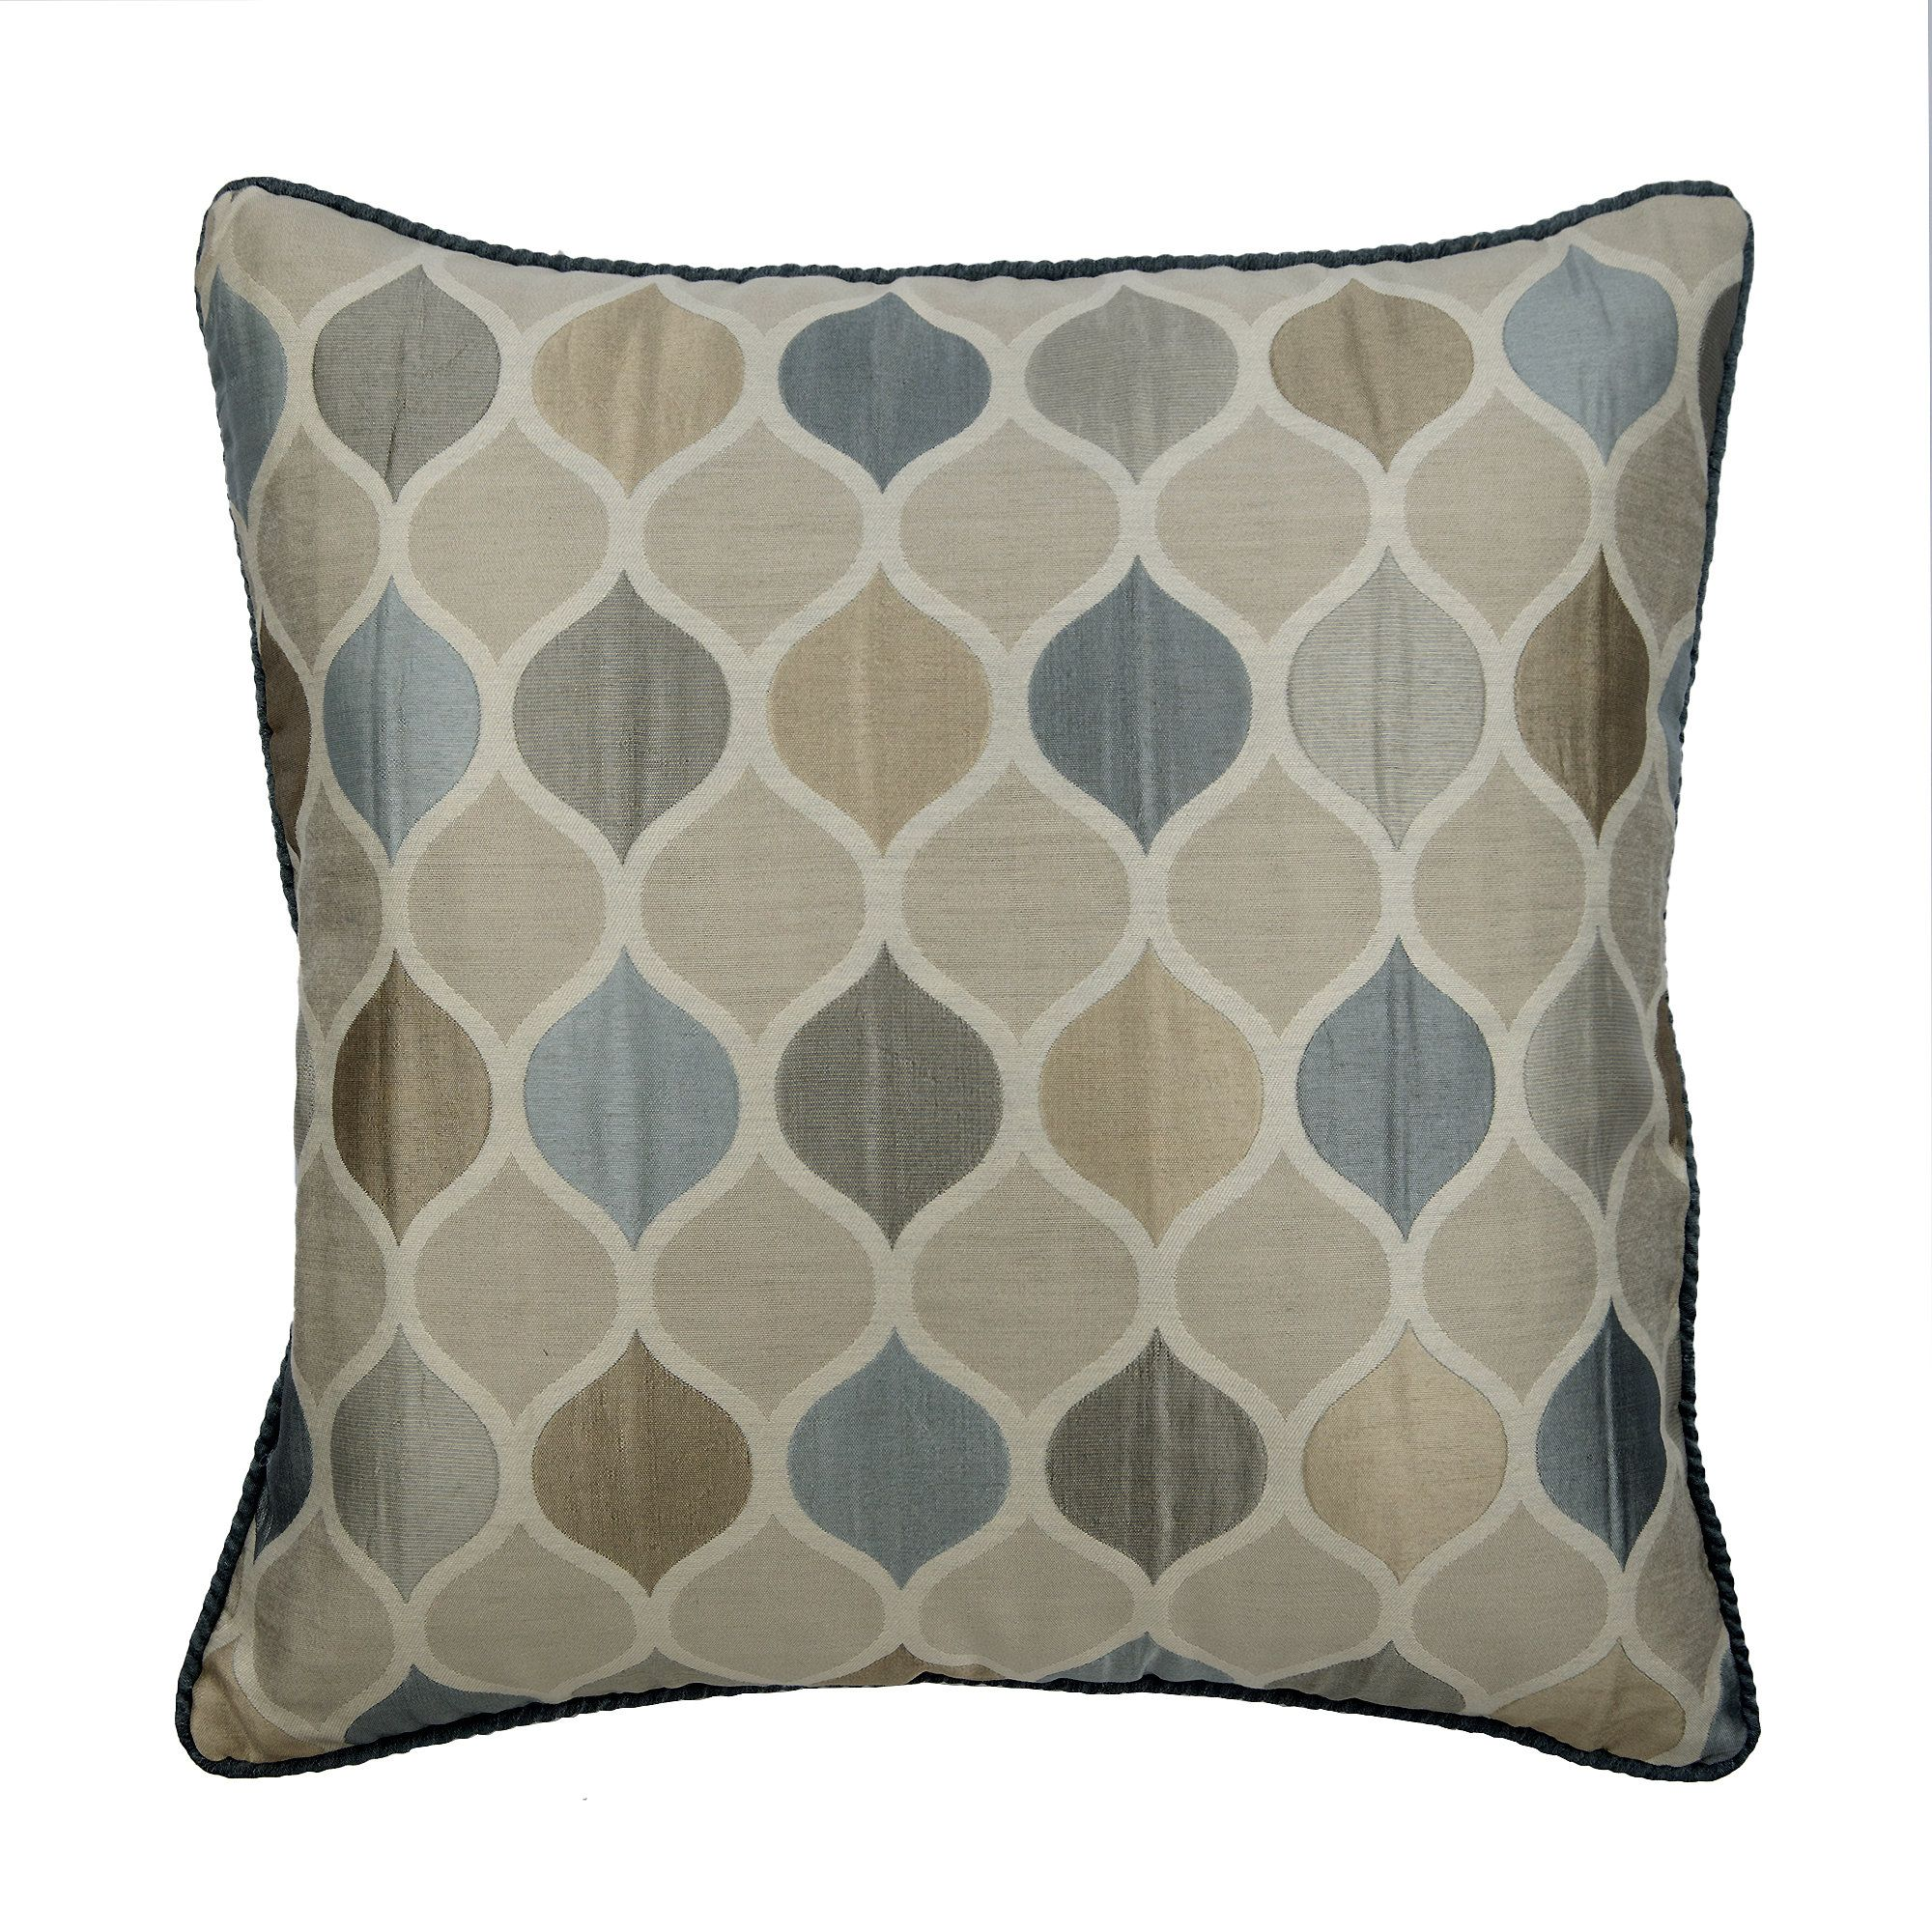 Decorative Pillow Sham Coverss, 24 x 24 Lattice Pillow Sham